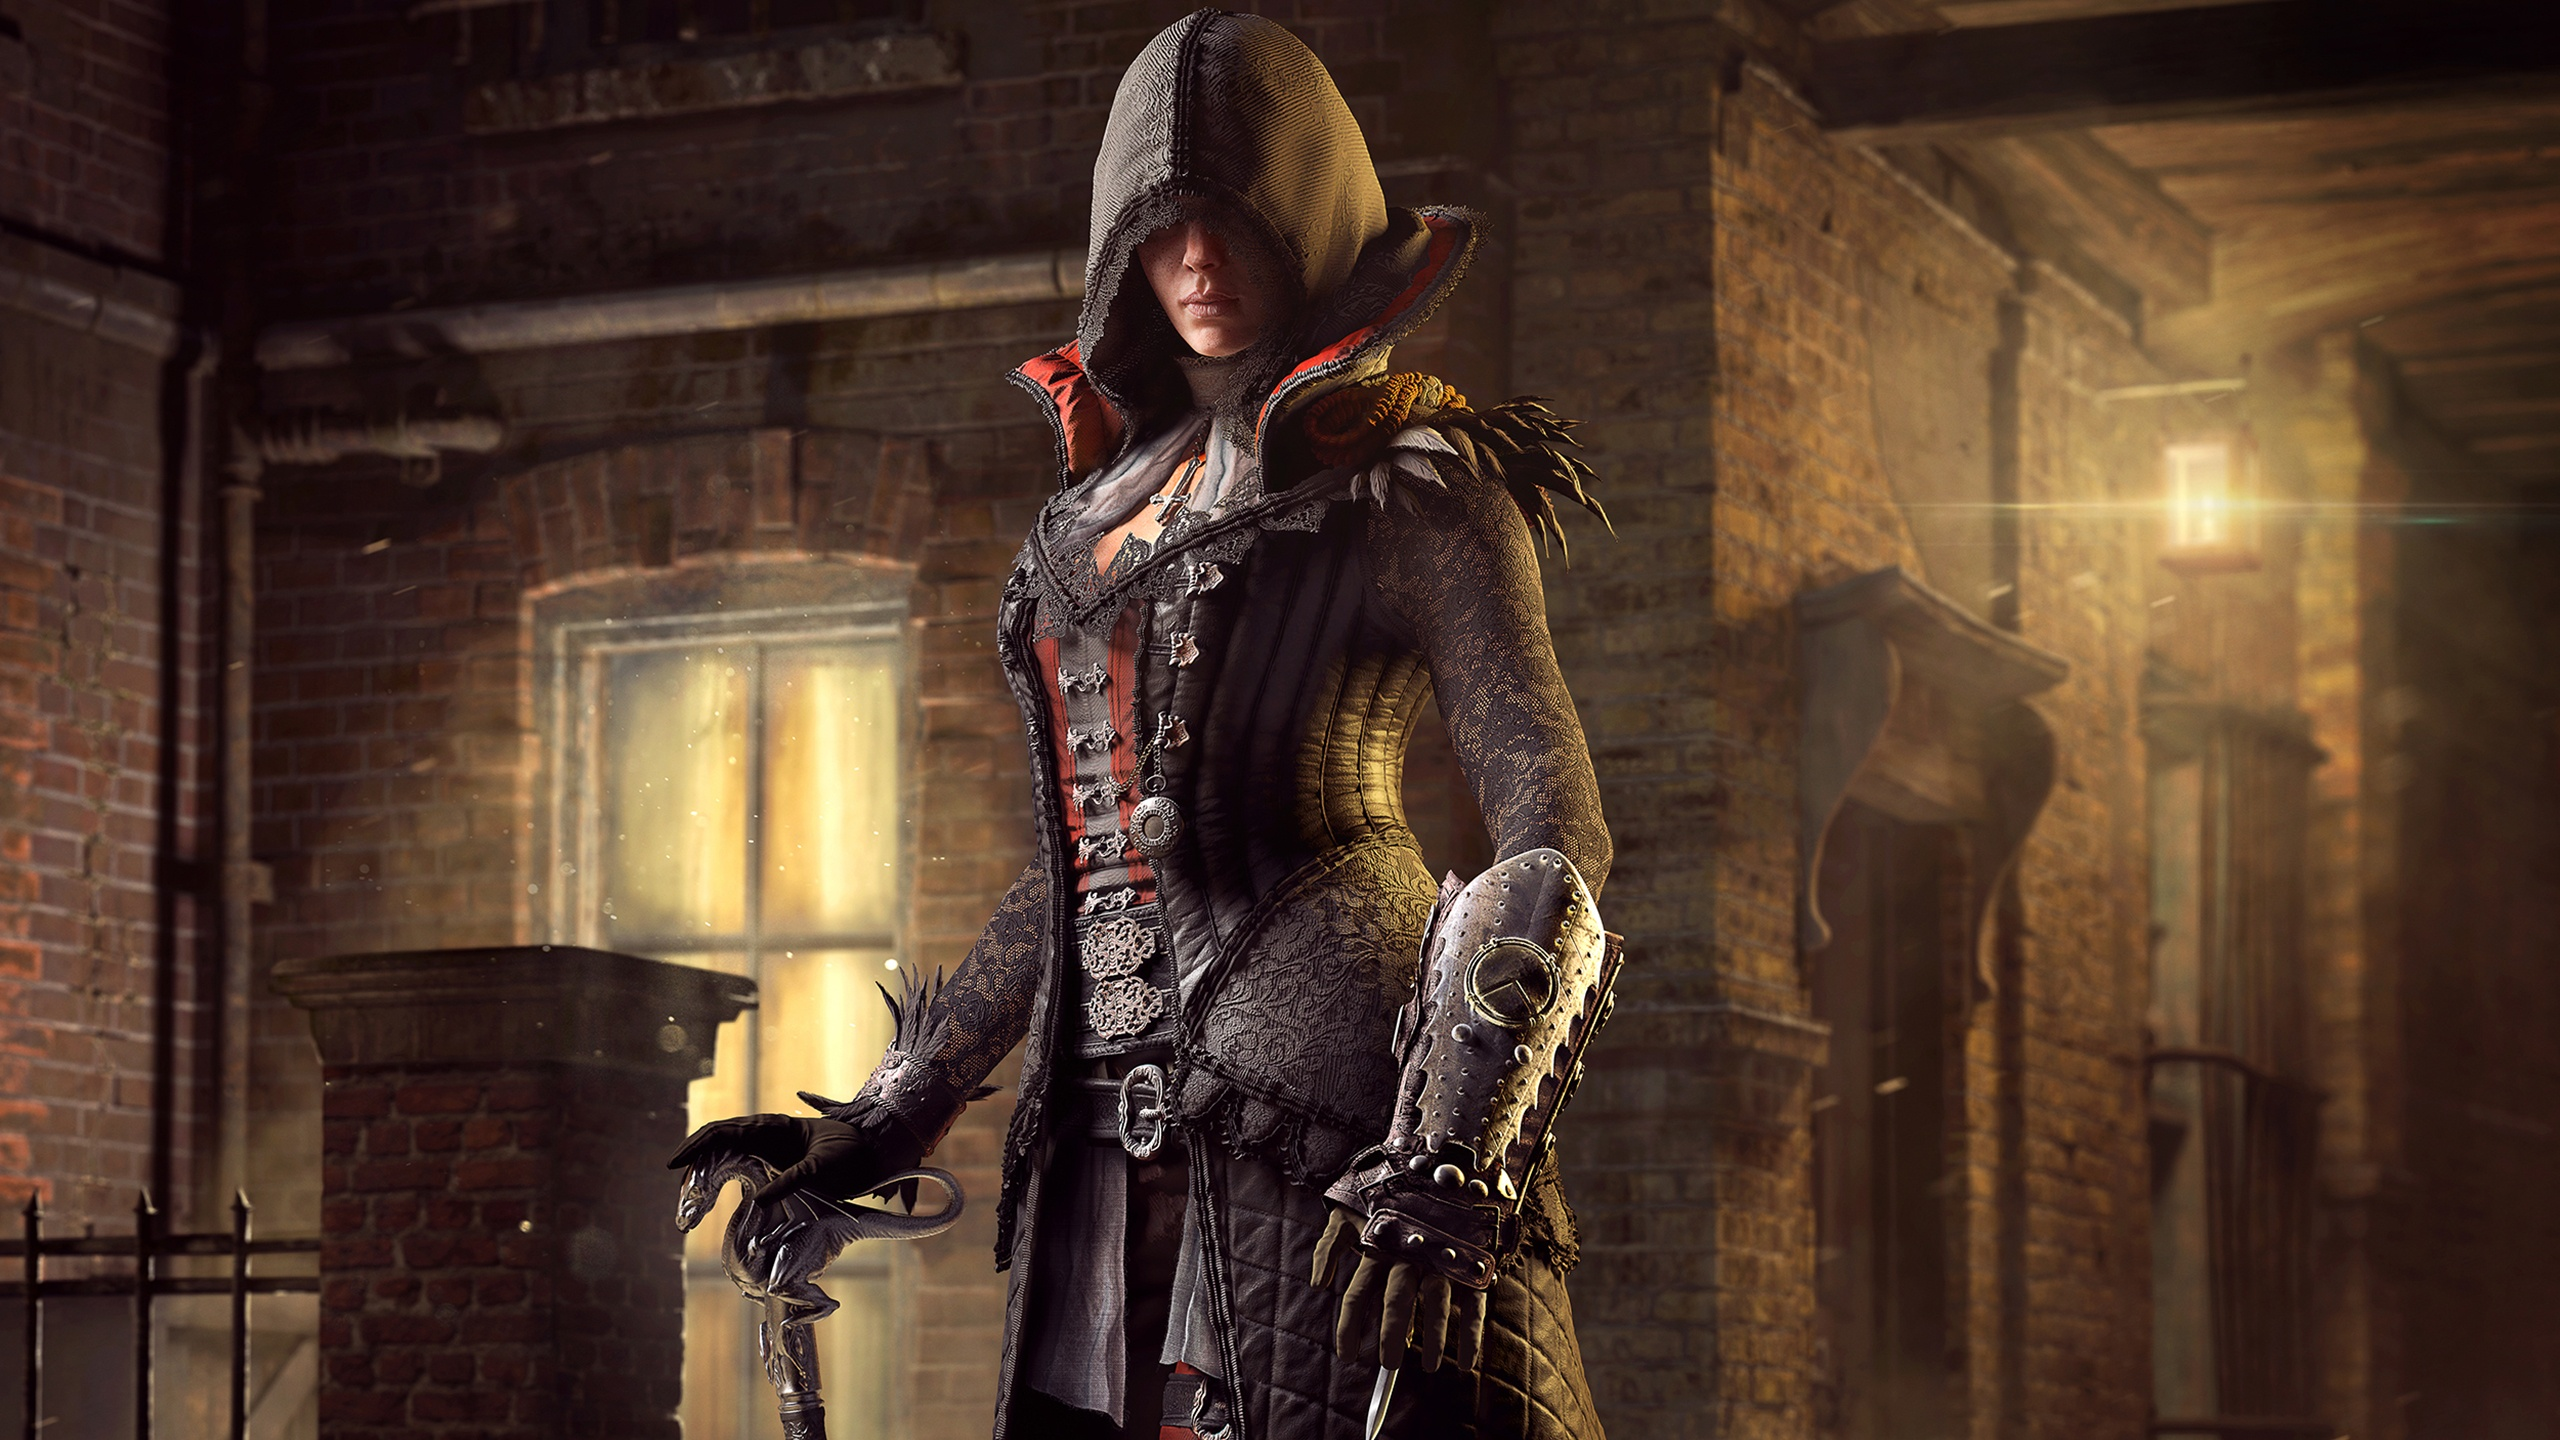 Assassin S Creed Syndicate Evie Frye Wallpapers In Jpg Format For